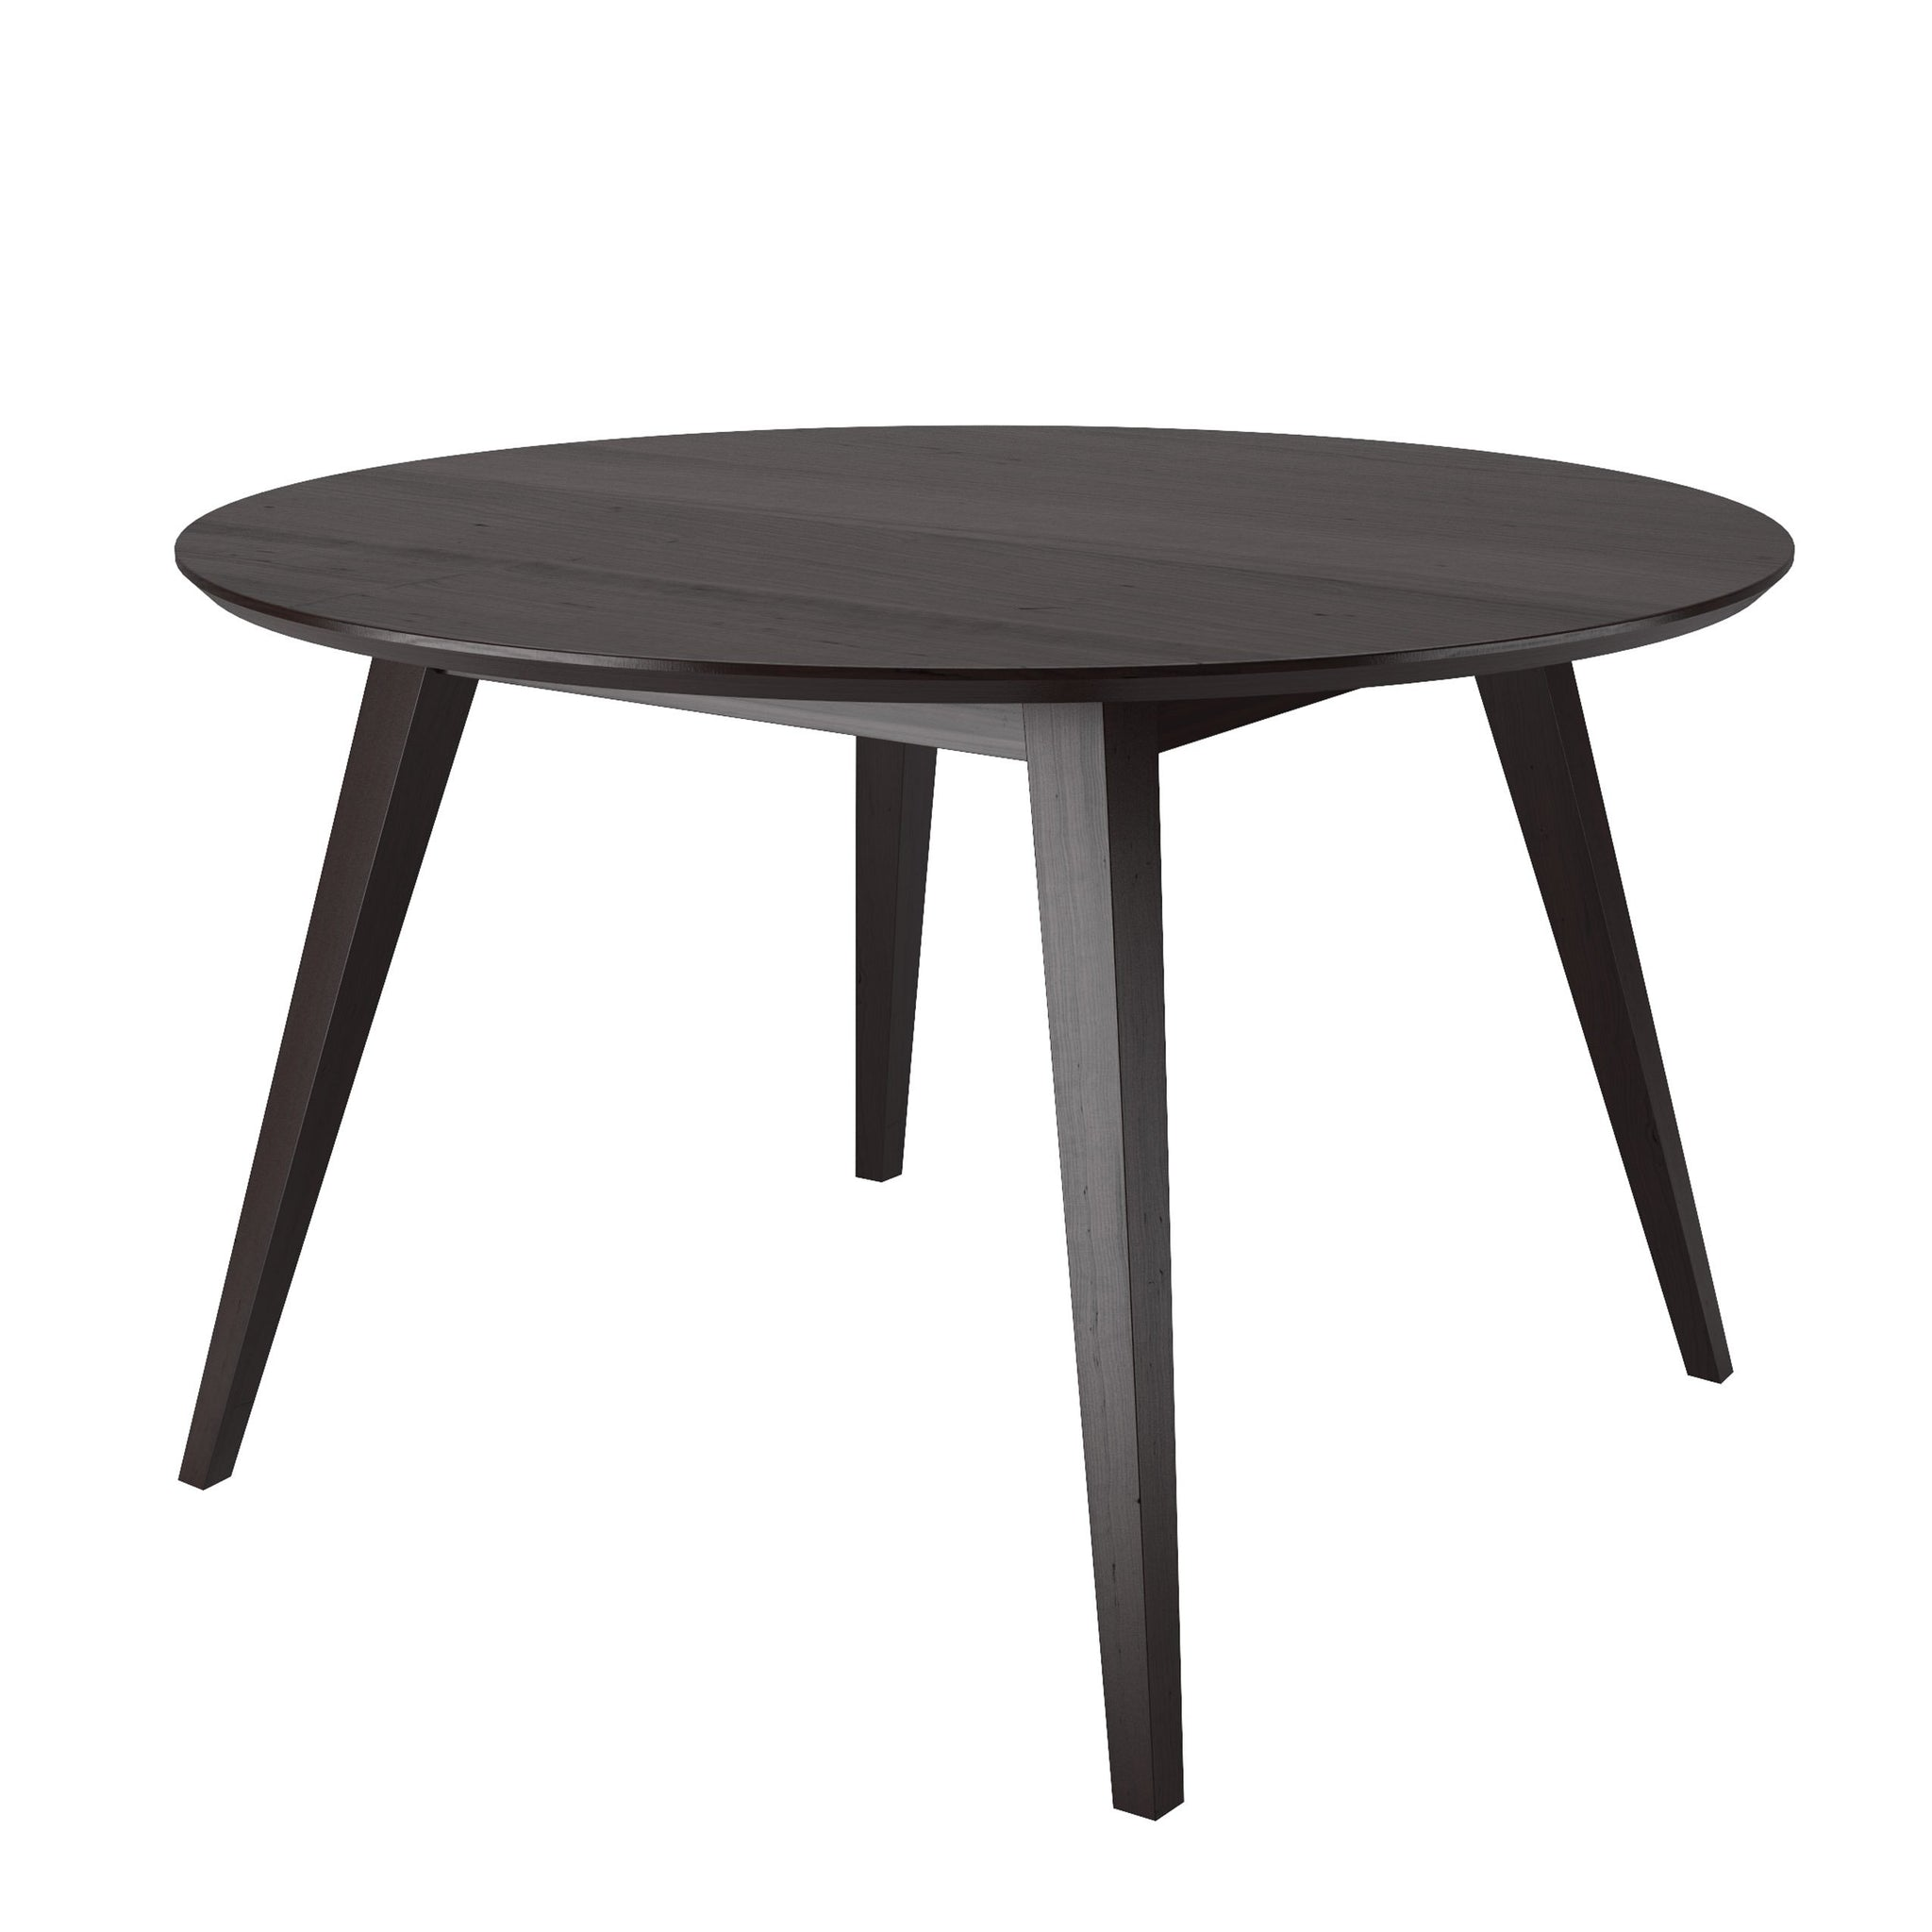 Atwood Round Cappuccino Stained Dining Table Clearance Final Sale Corliving Furniture Us